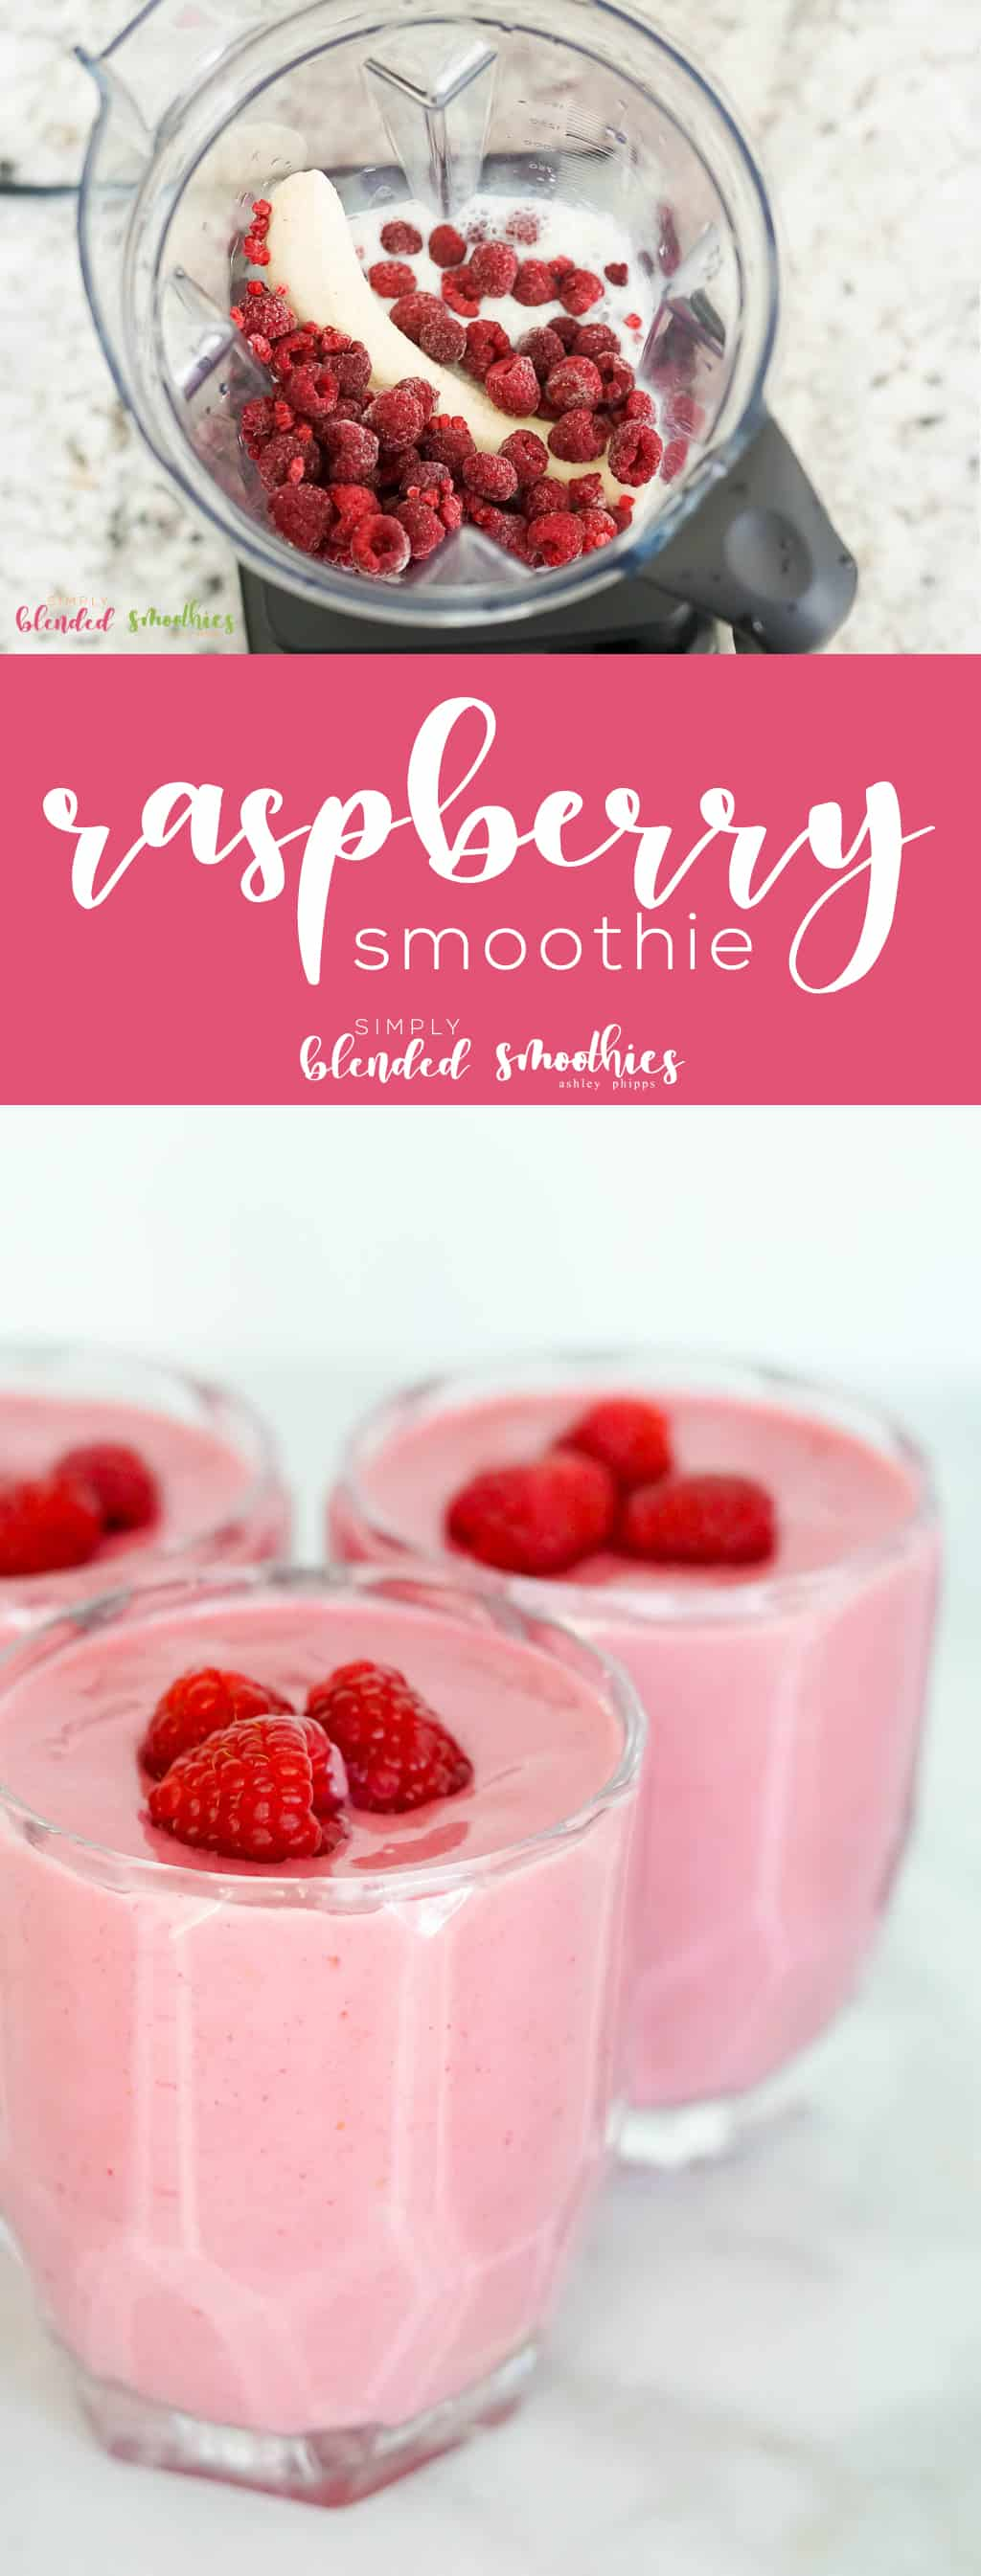 This raspberry smoothie recipe is a delicious and refreshing smoothie perfect for breakfast brunch an afternoon snack or even as a healthy dessert